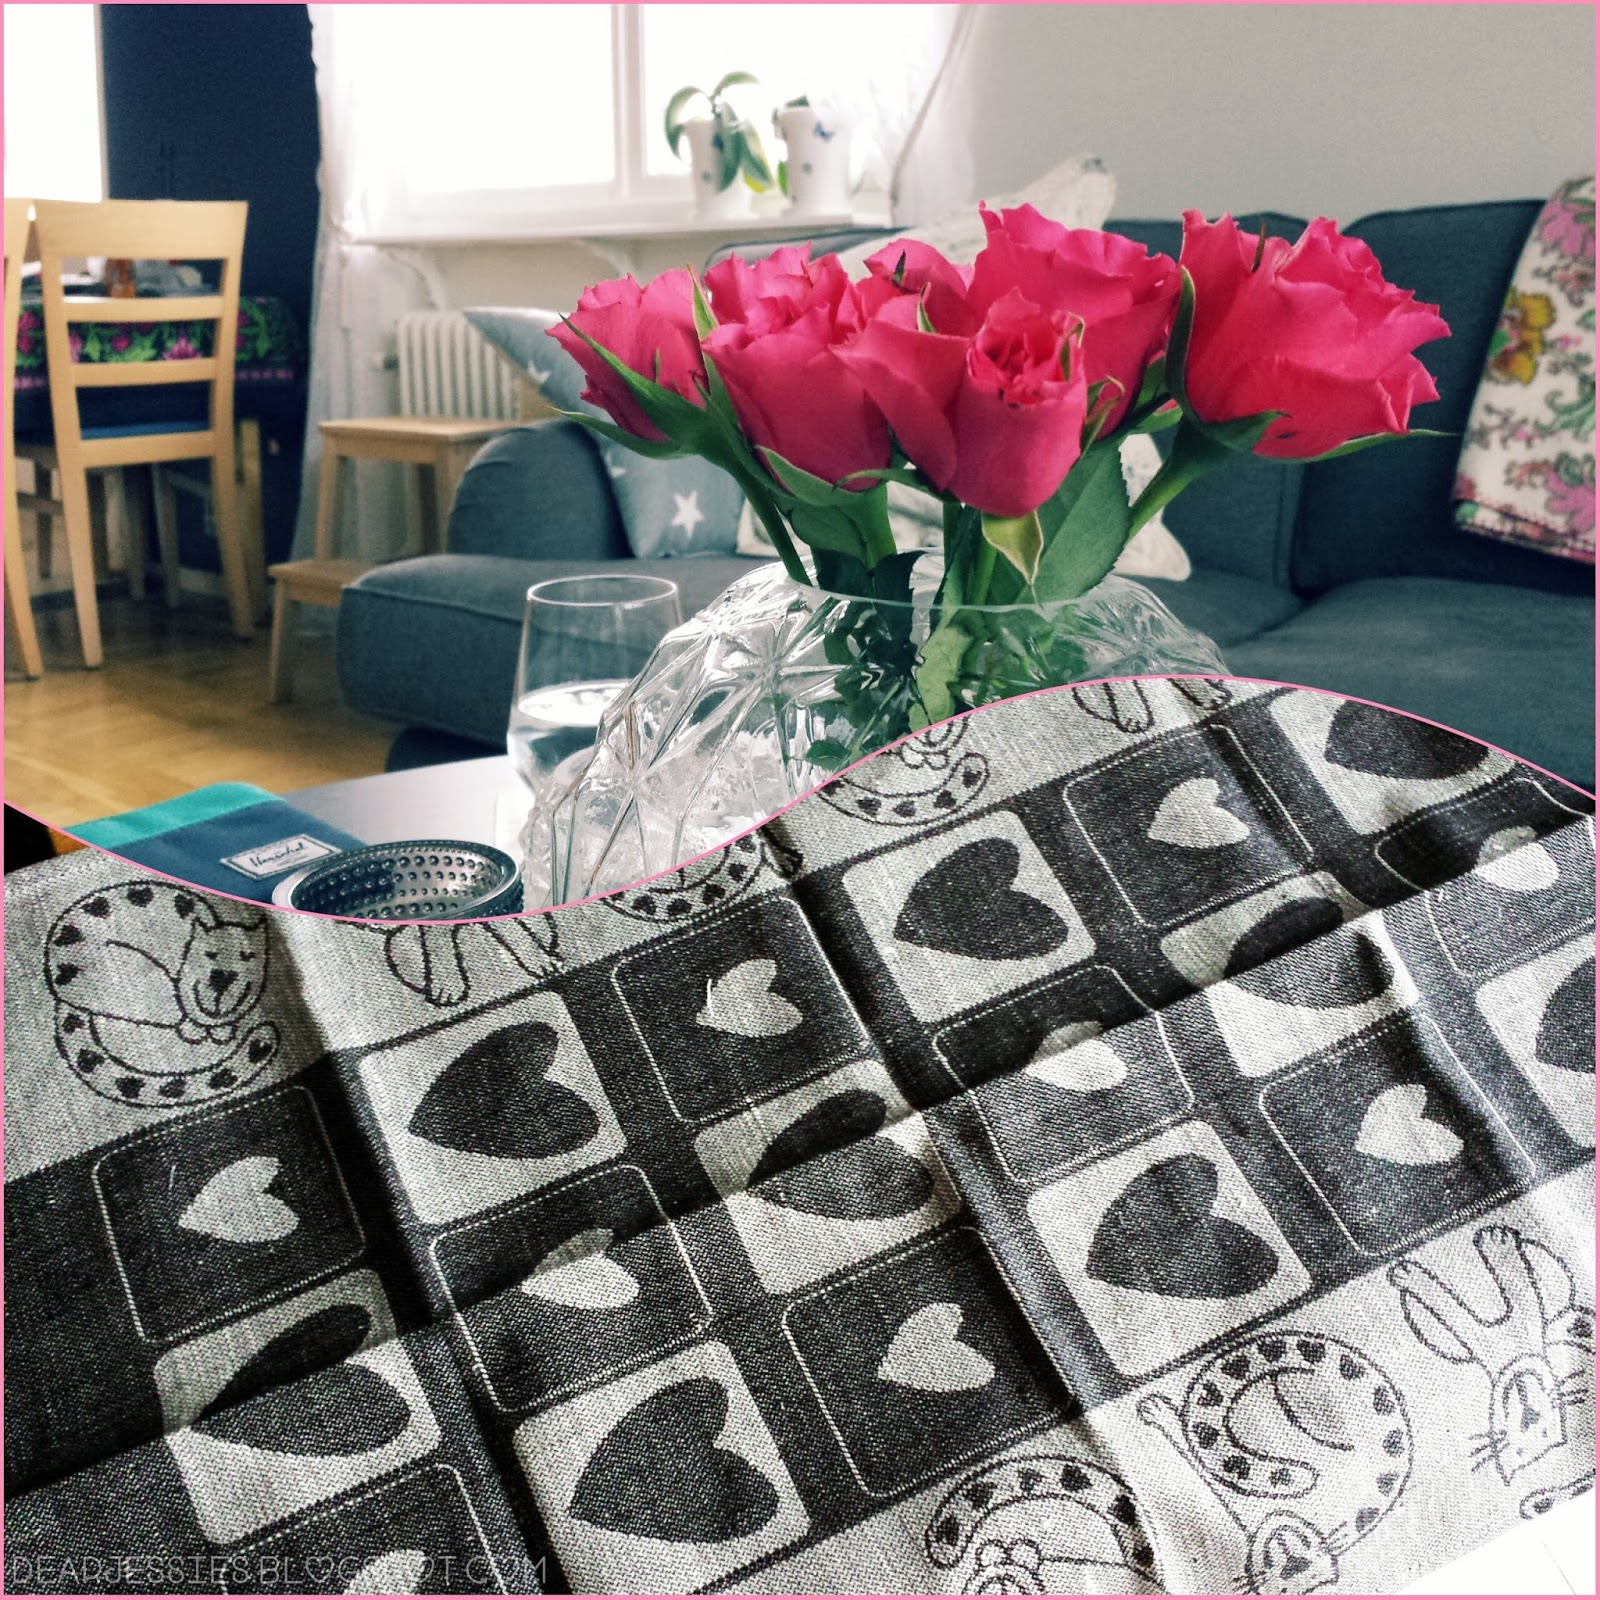 roses, interior, kitchen towel